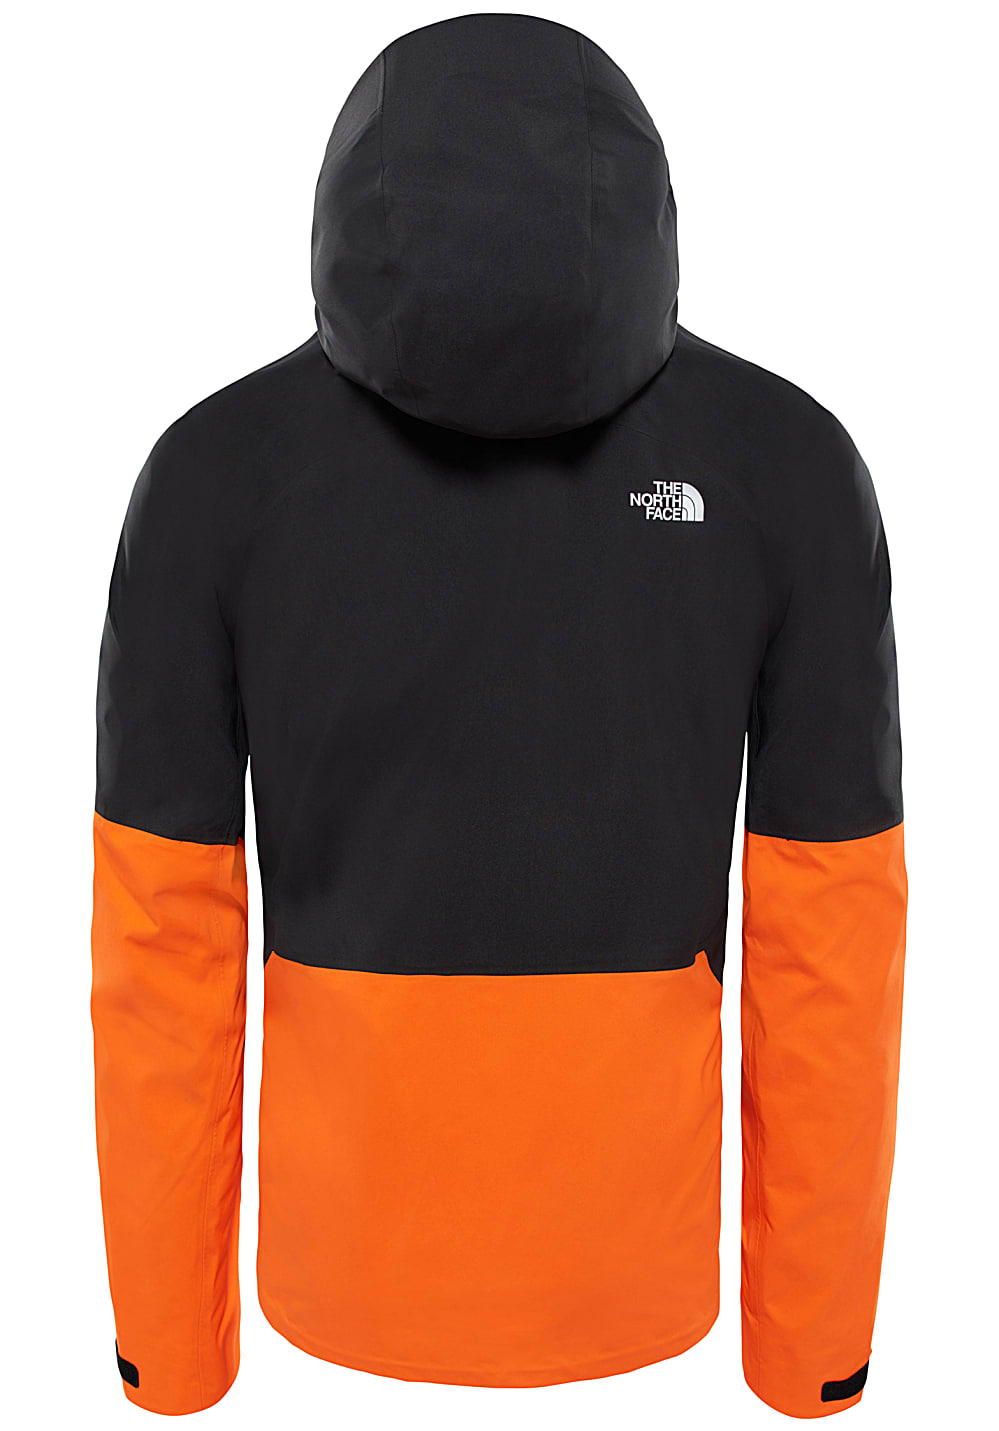 3cd0e2fa2 THE NORTH FACE Impendor Shell - Outdoor Jacket for Men - Orange